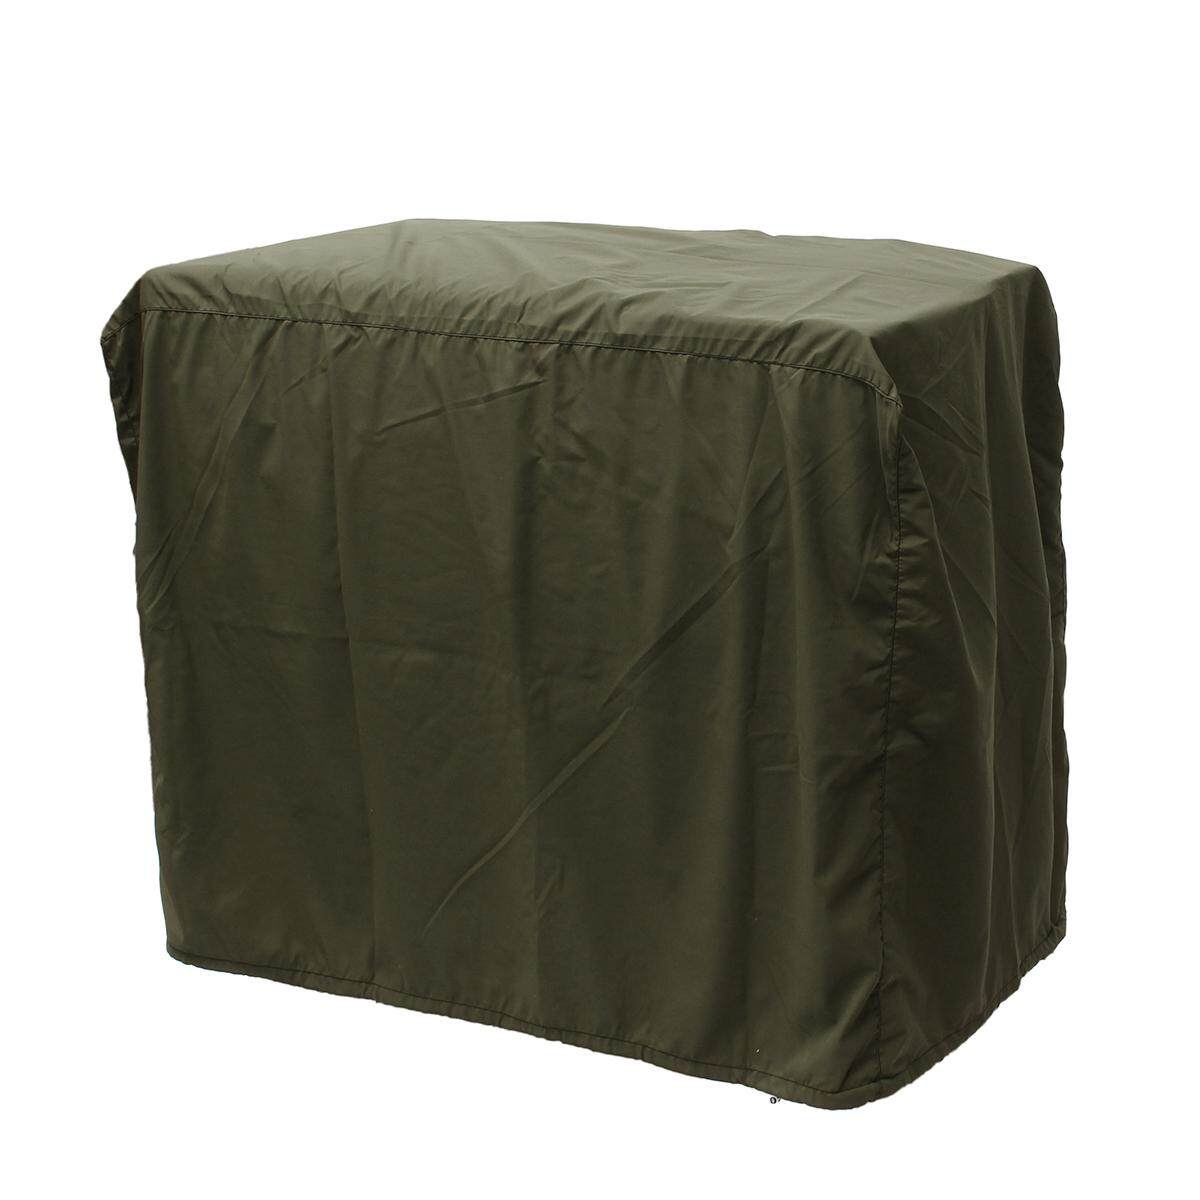 Sportsman Extra Large Waterproof Generator Cover For 15,000-Watt Generators New By Glimmer.